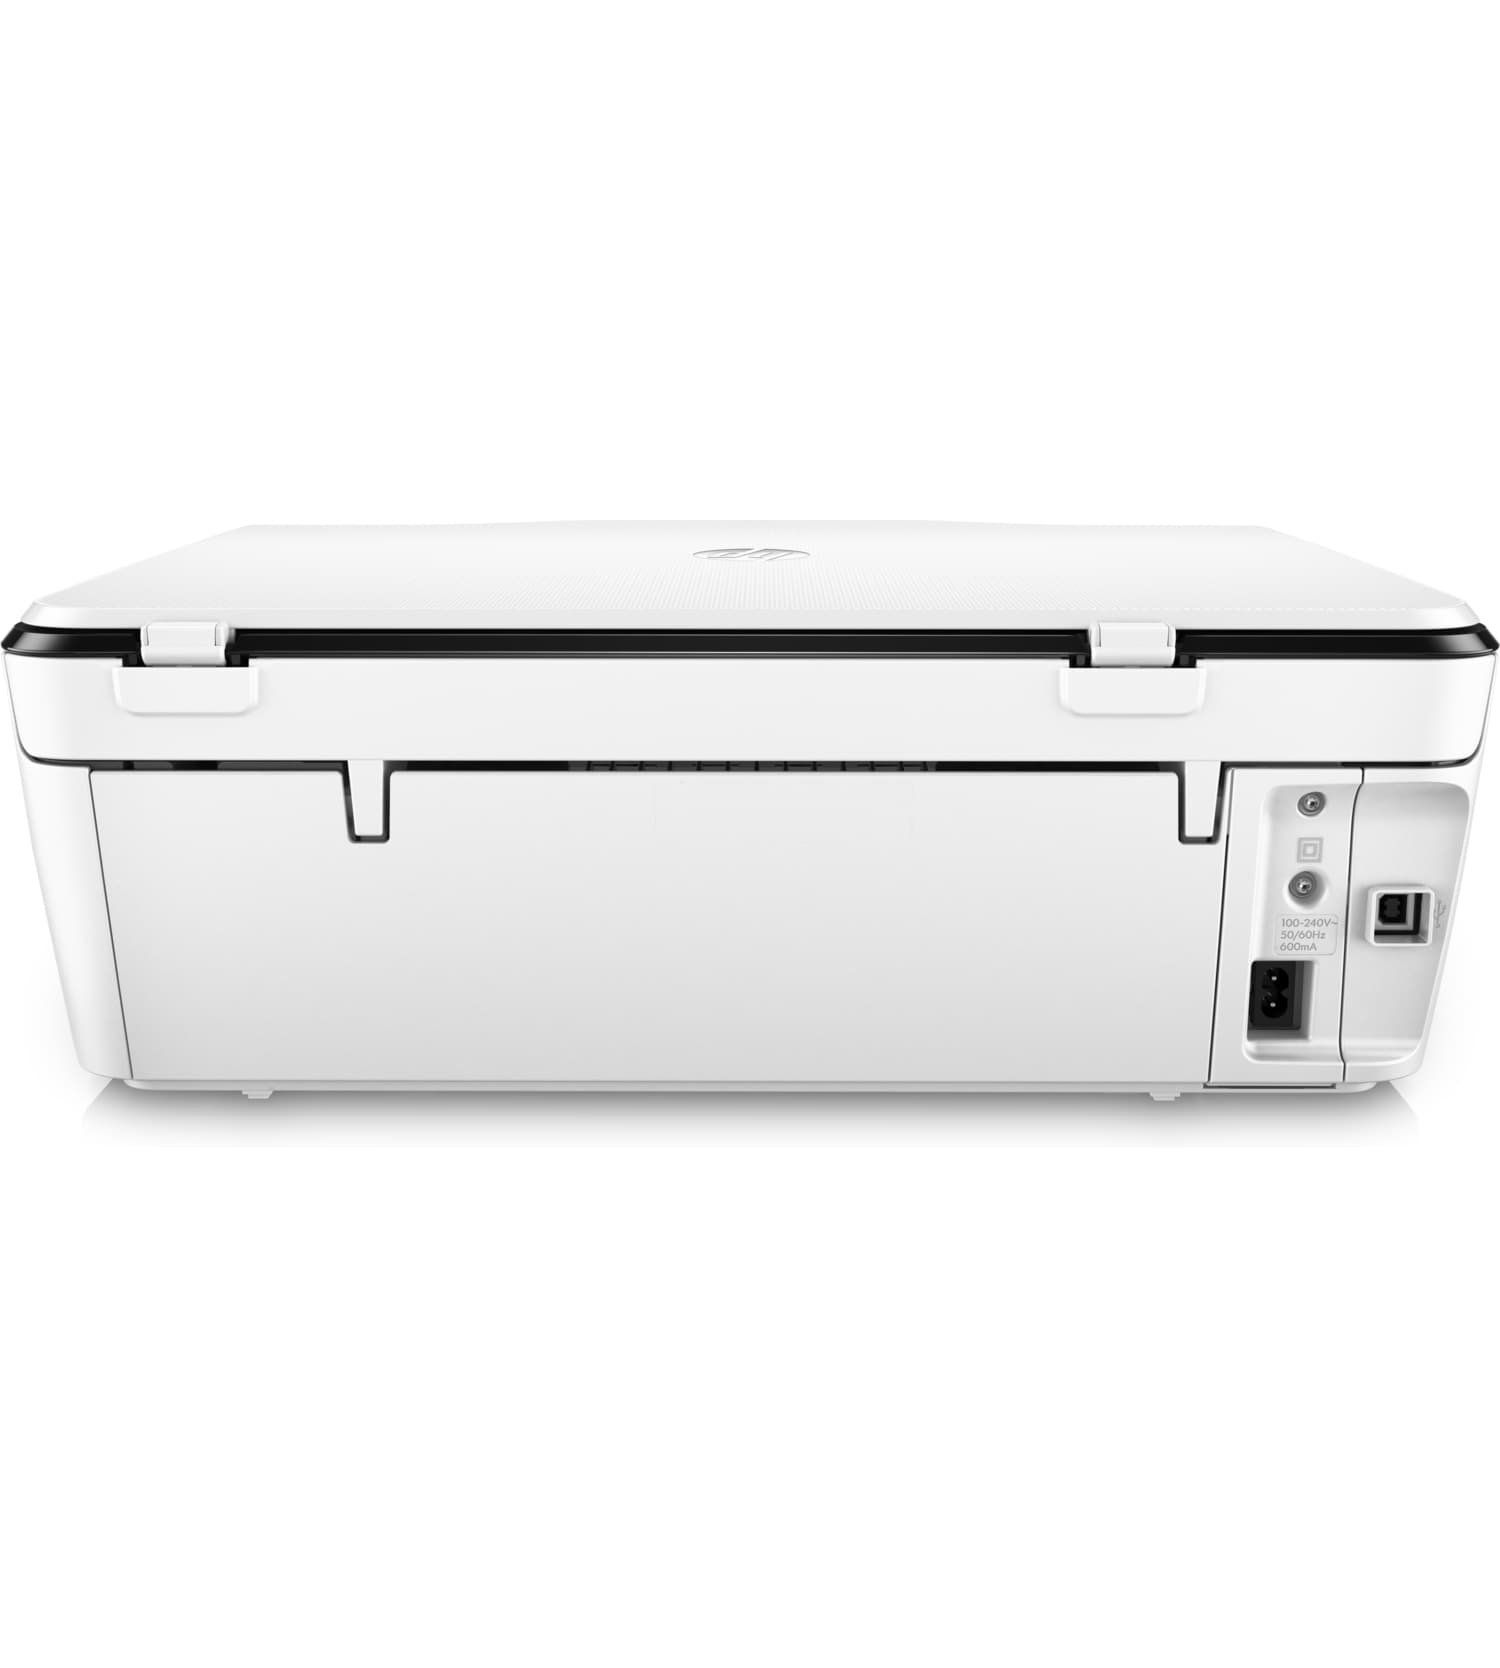 Hp Envy Photo 6255 Allinone Printer With Wifi And Mobile Printing In